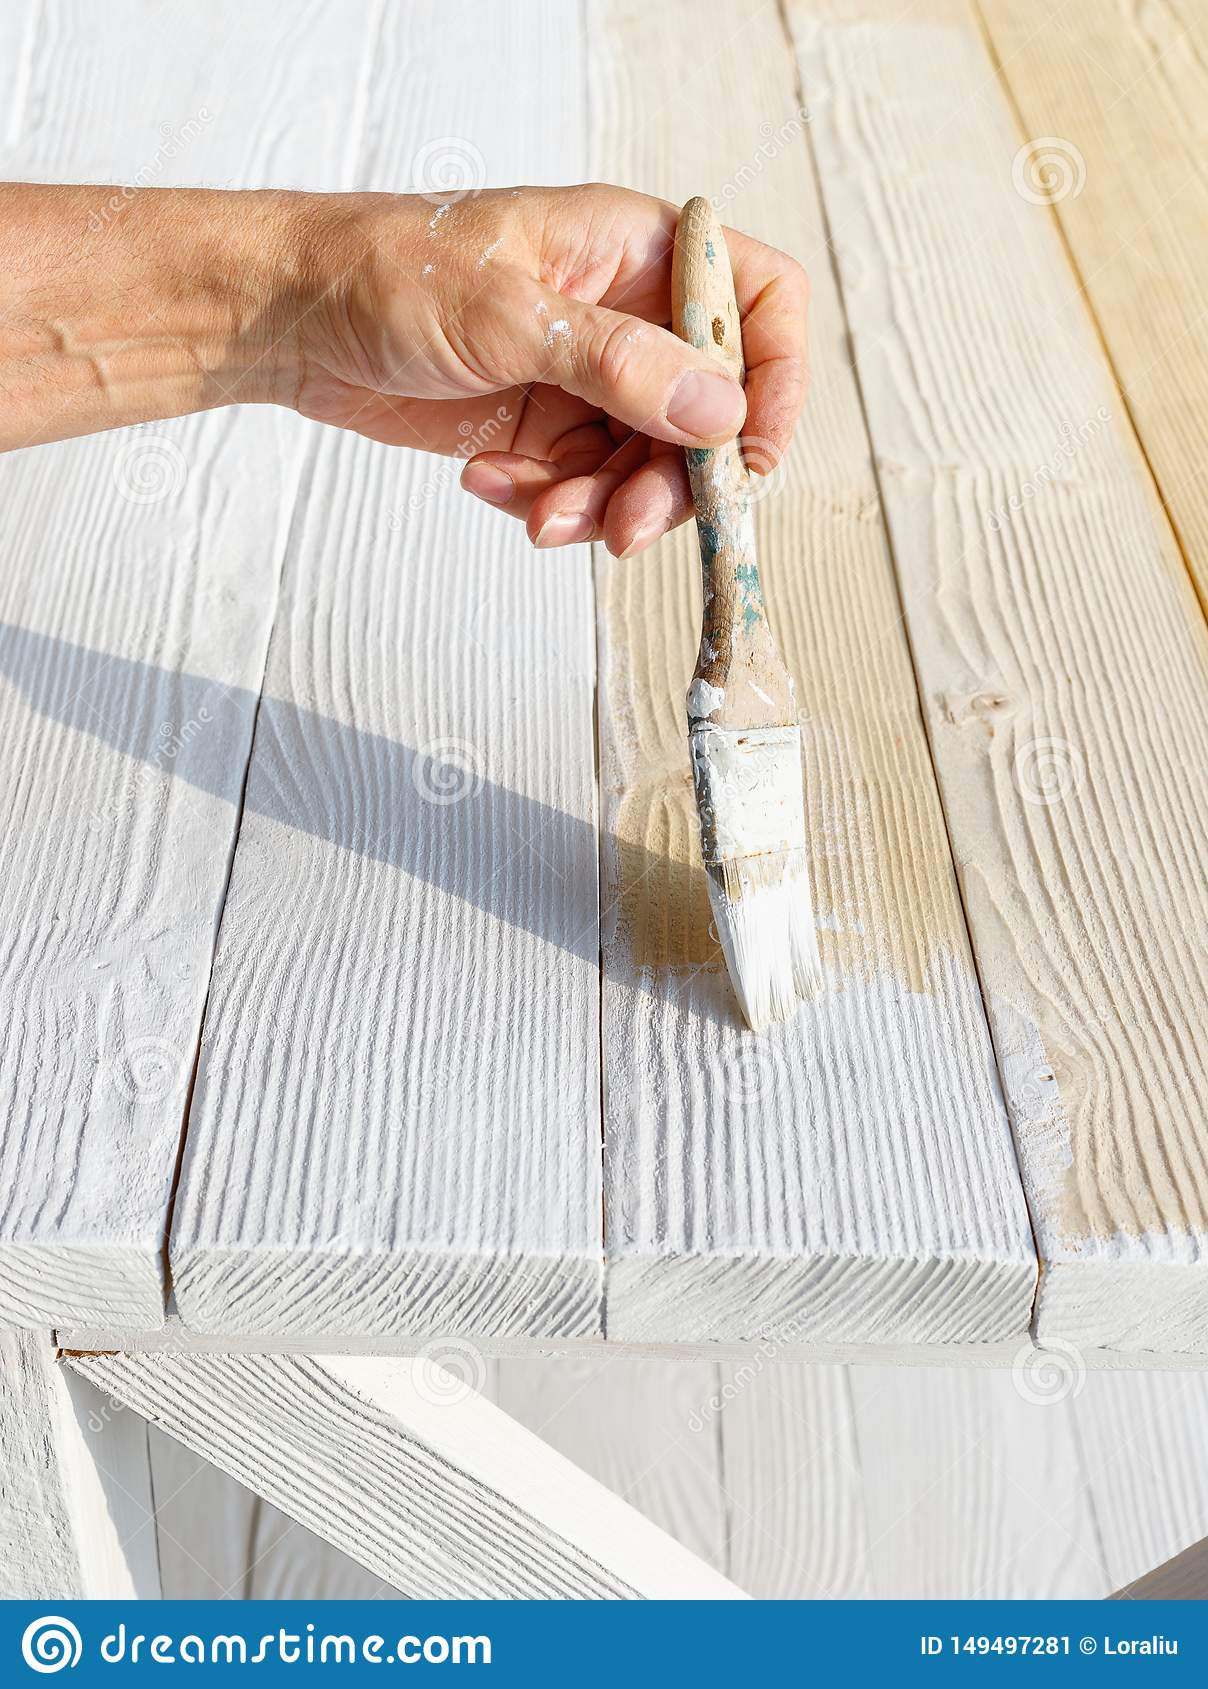 Worker Painting White Wooden Furniture Outdoor Stock Image Image Of Construction Design 149497281